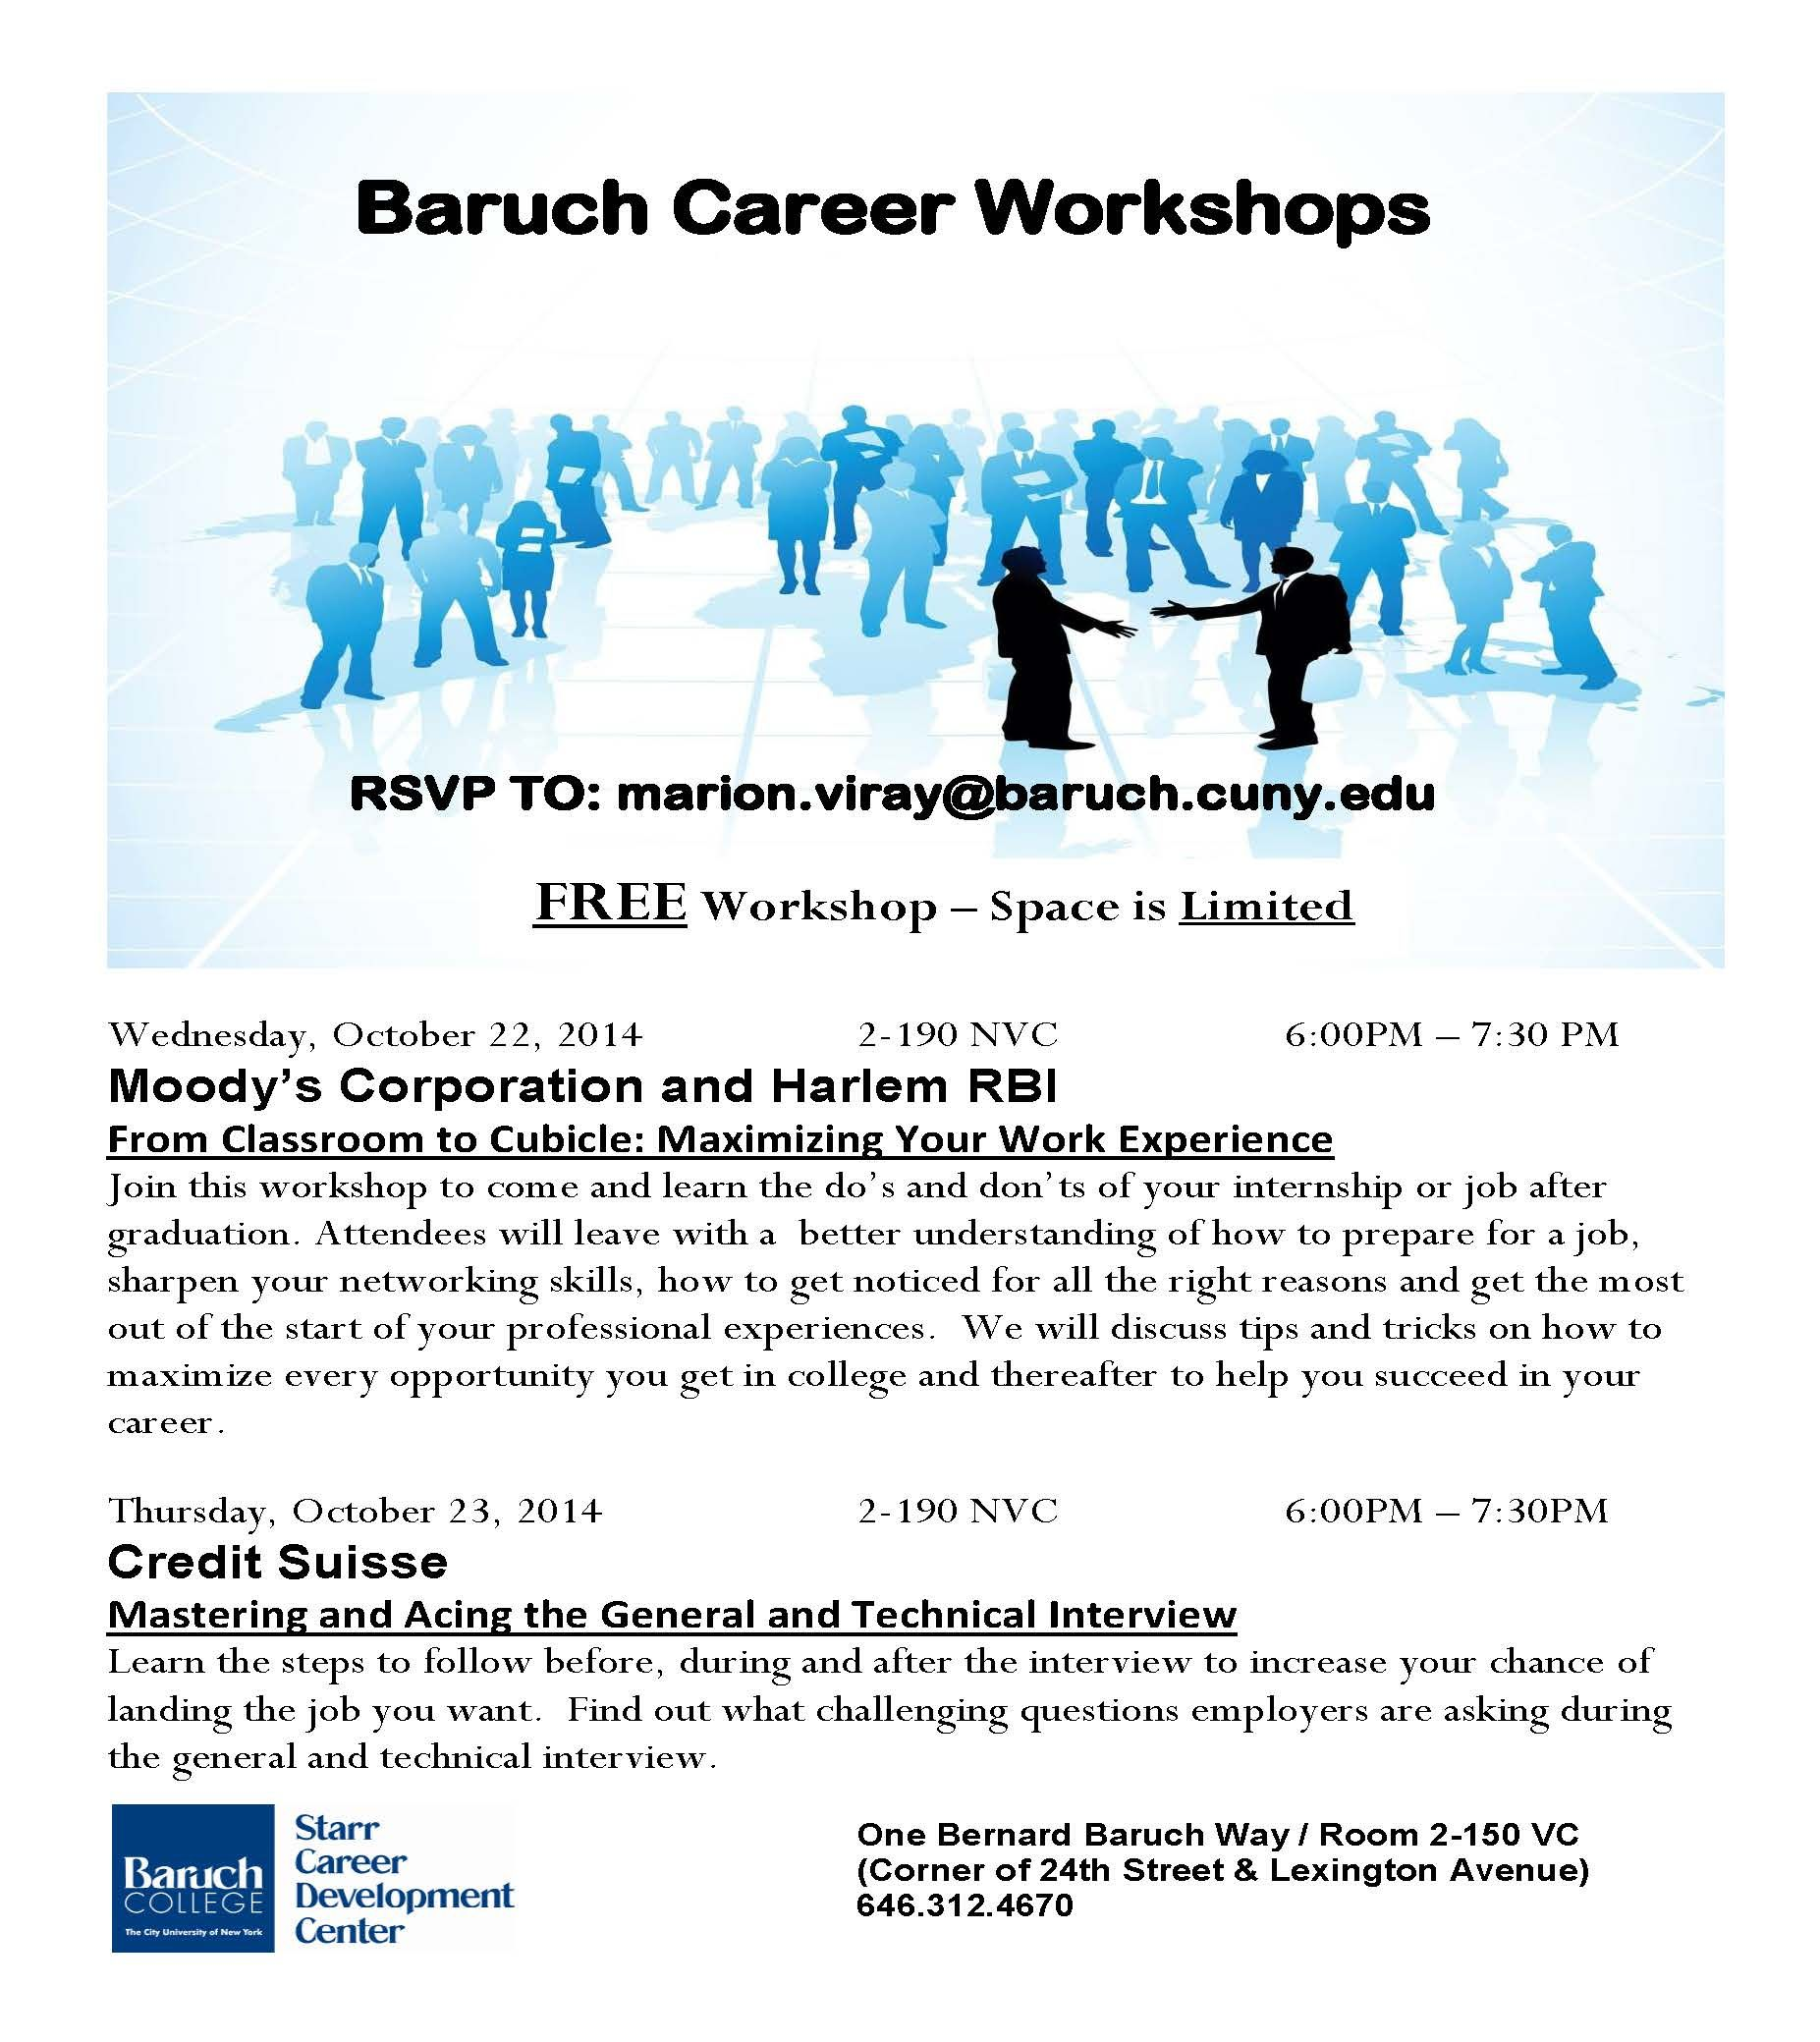 Free Career Workshops From Classroom To Cubicle Maximizing Your Work Experience Wednesday October 22 201 Work Experience Free Workshops Career Development